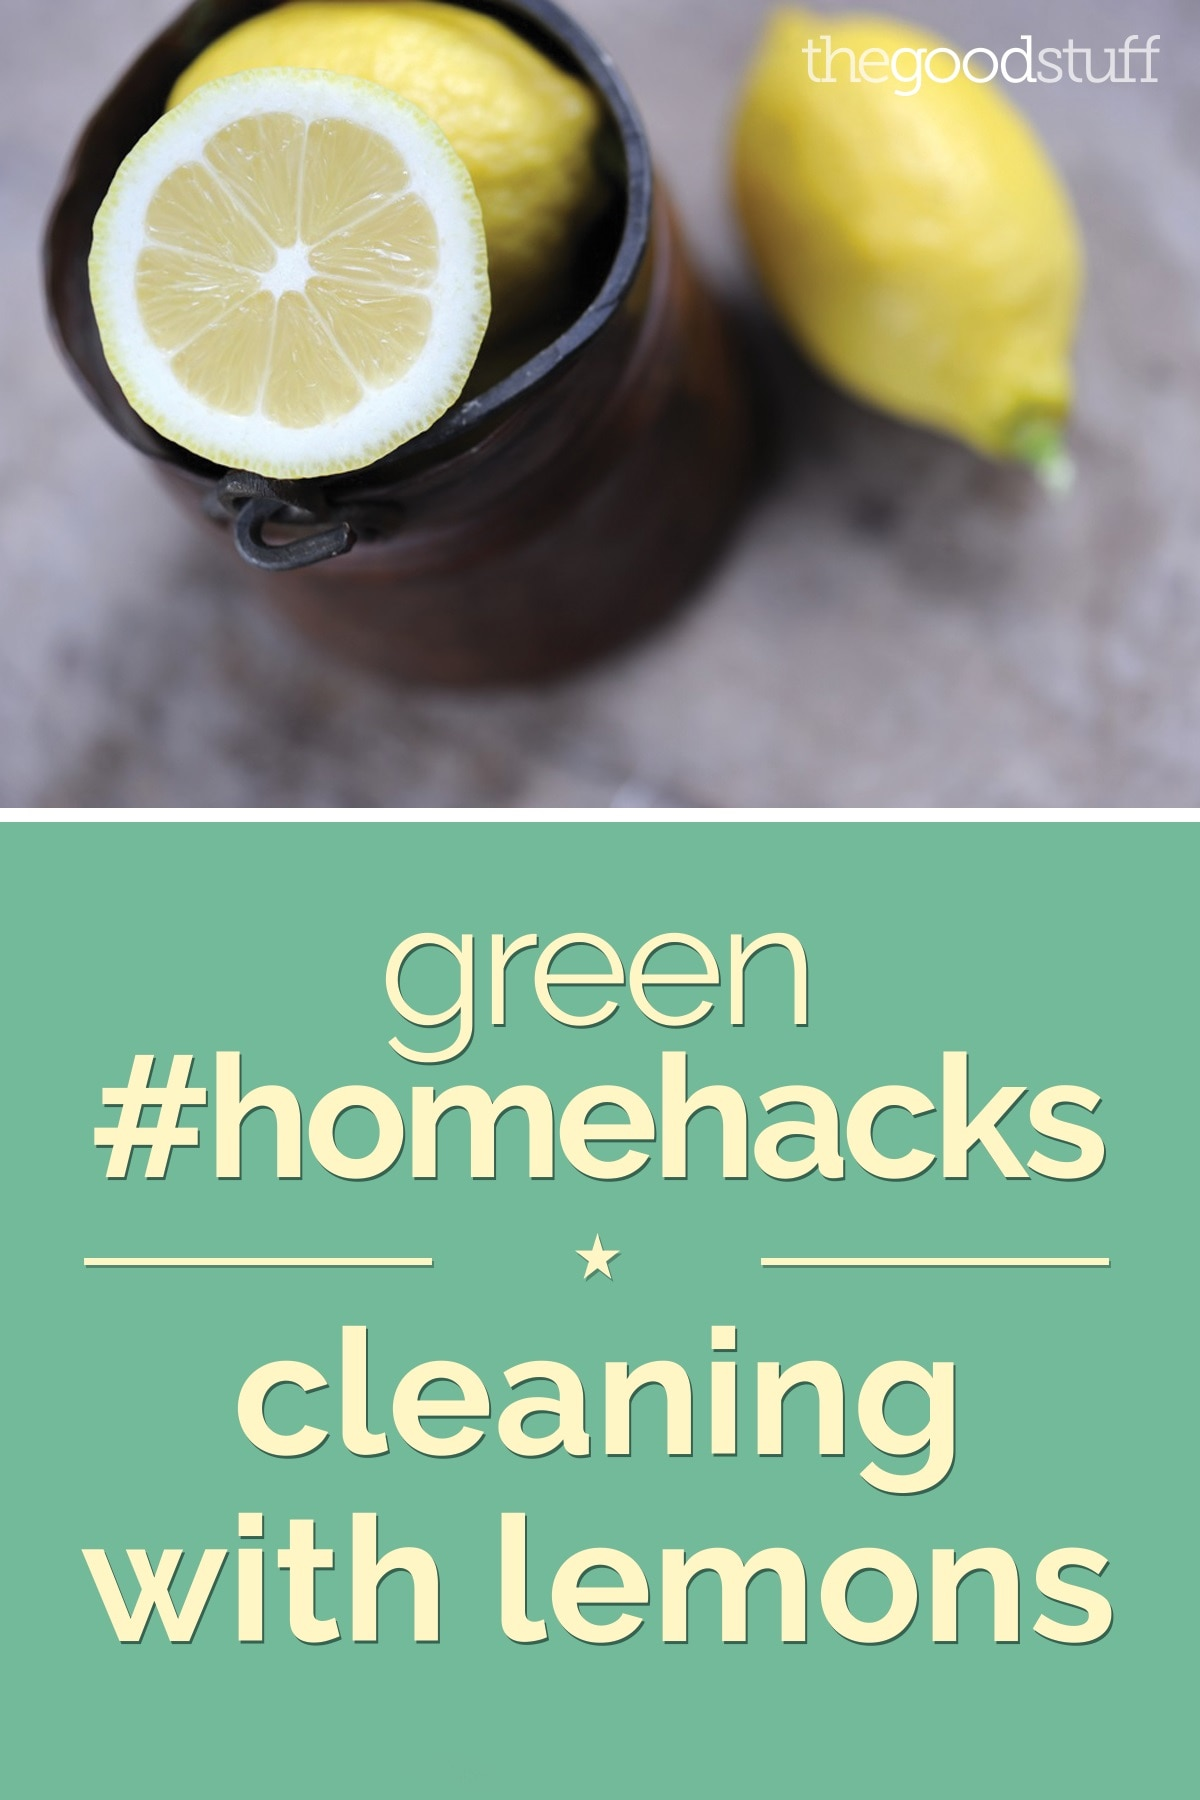 diy-cleaning-with-lemons